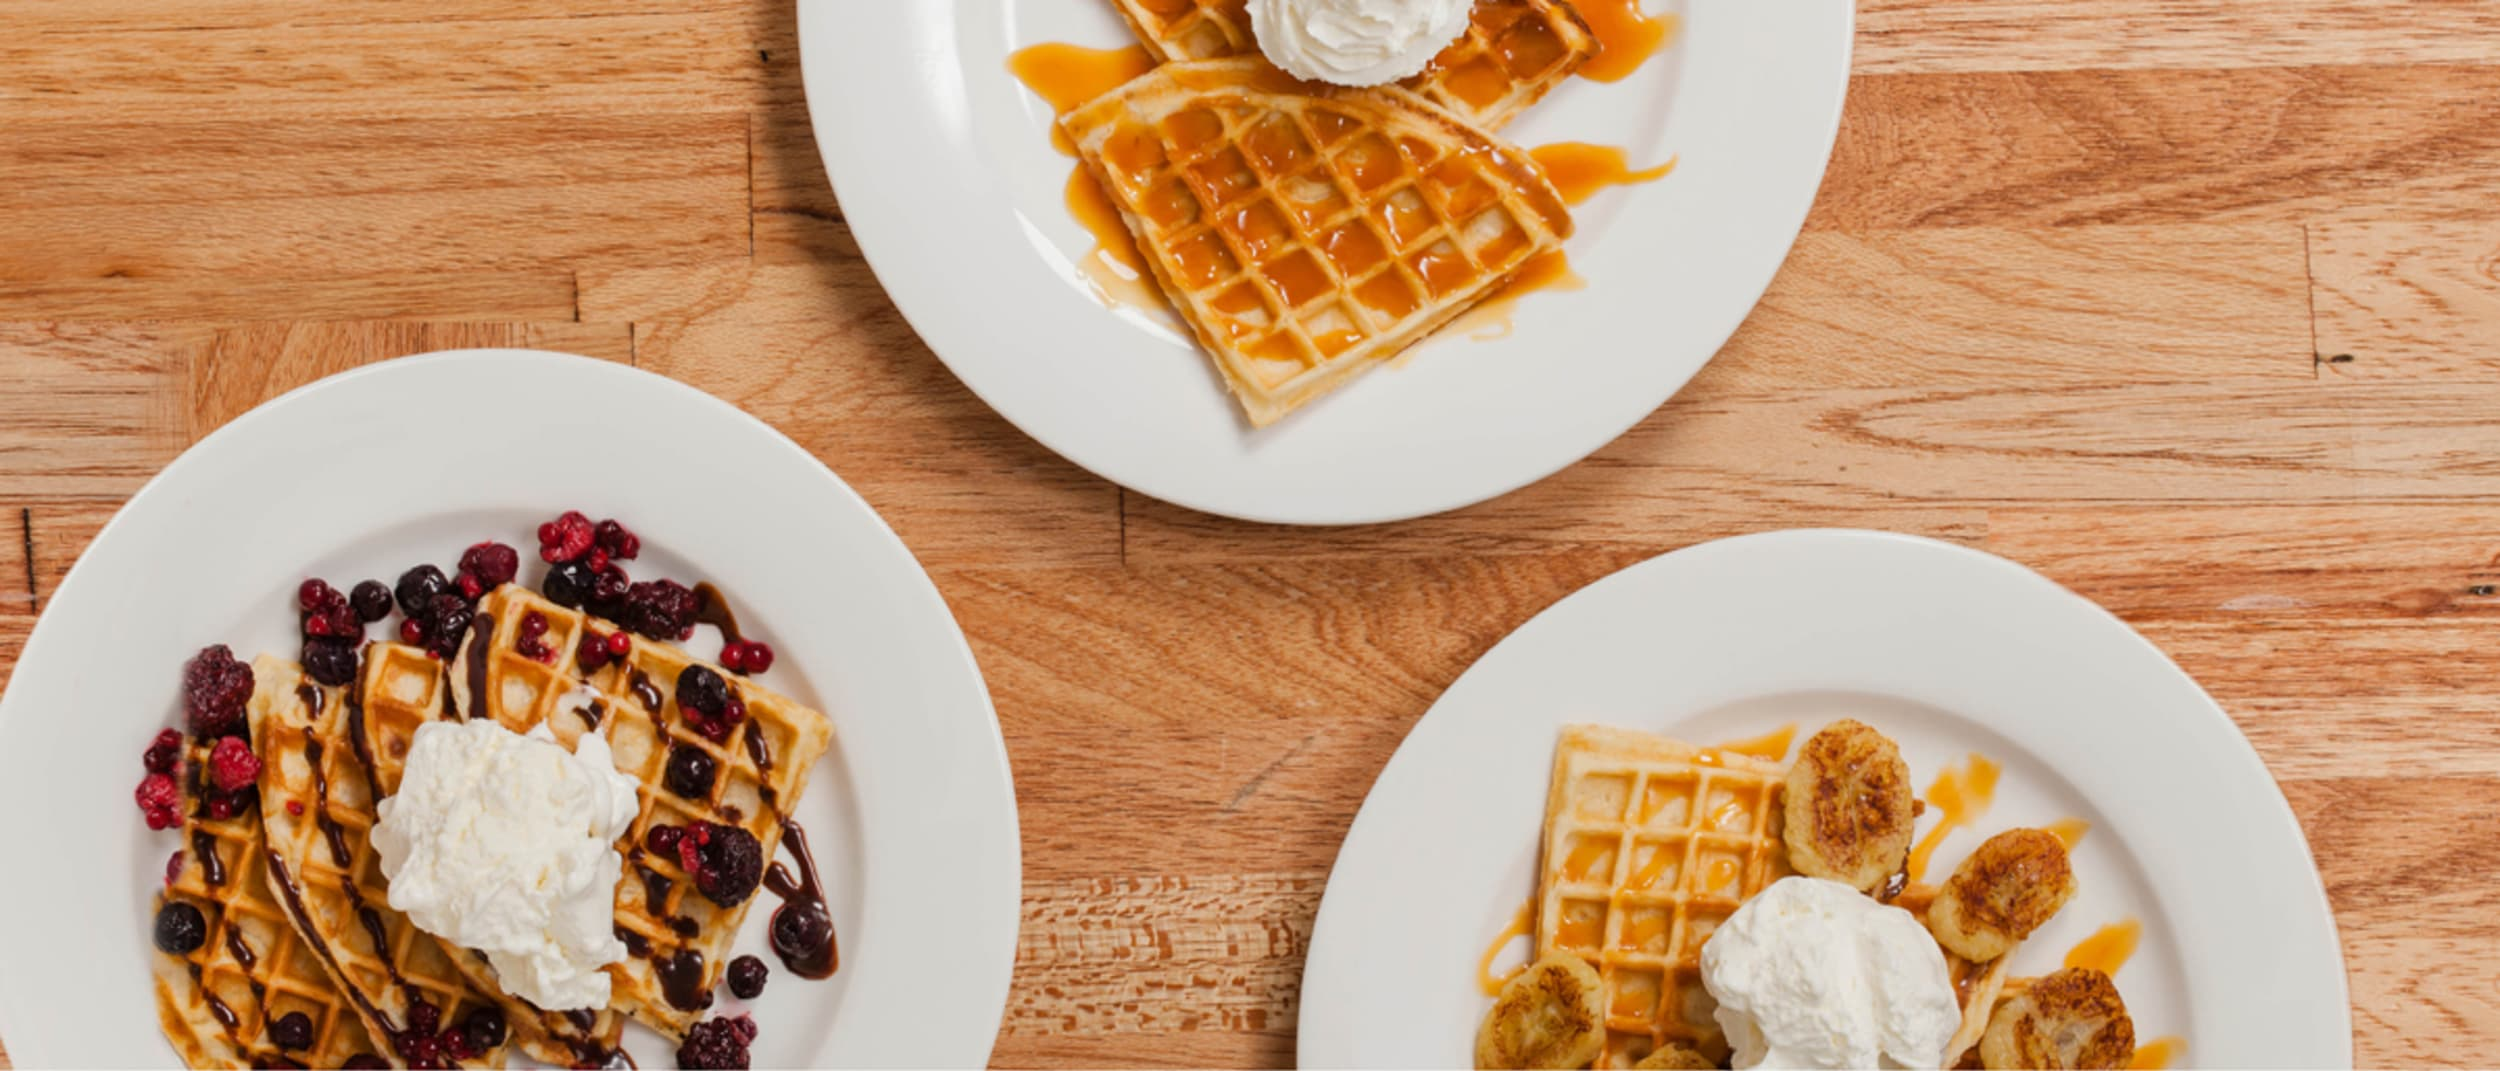 Shingle Inn: say yes to Waffles